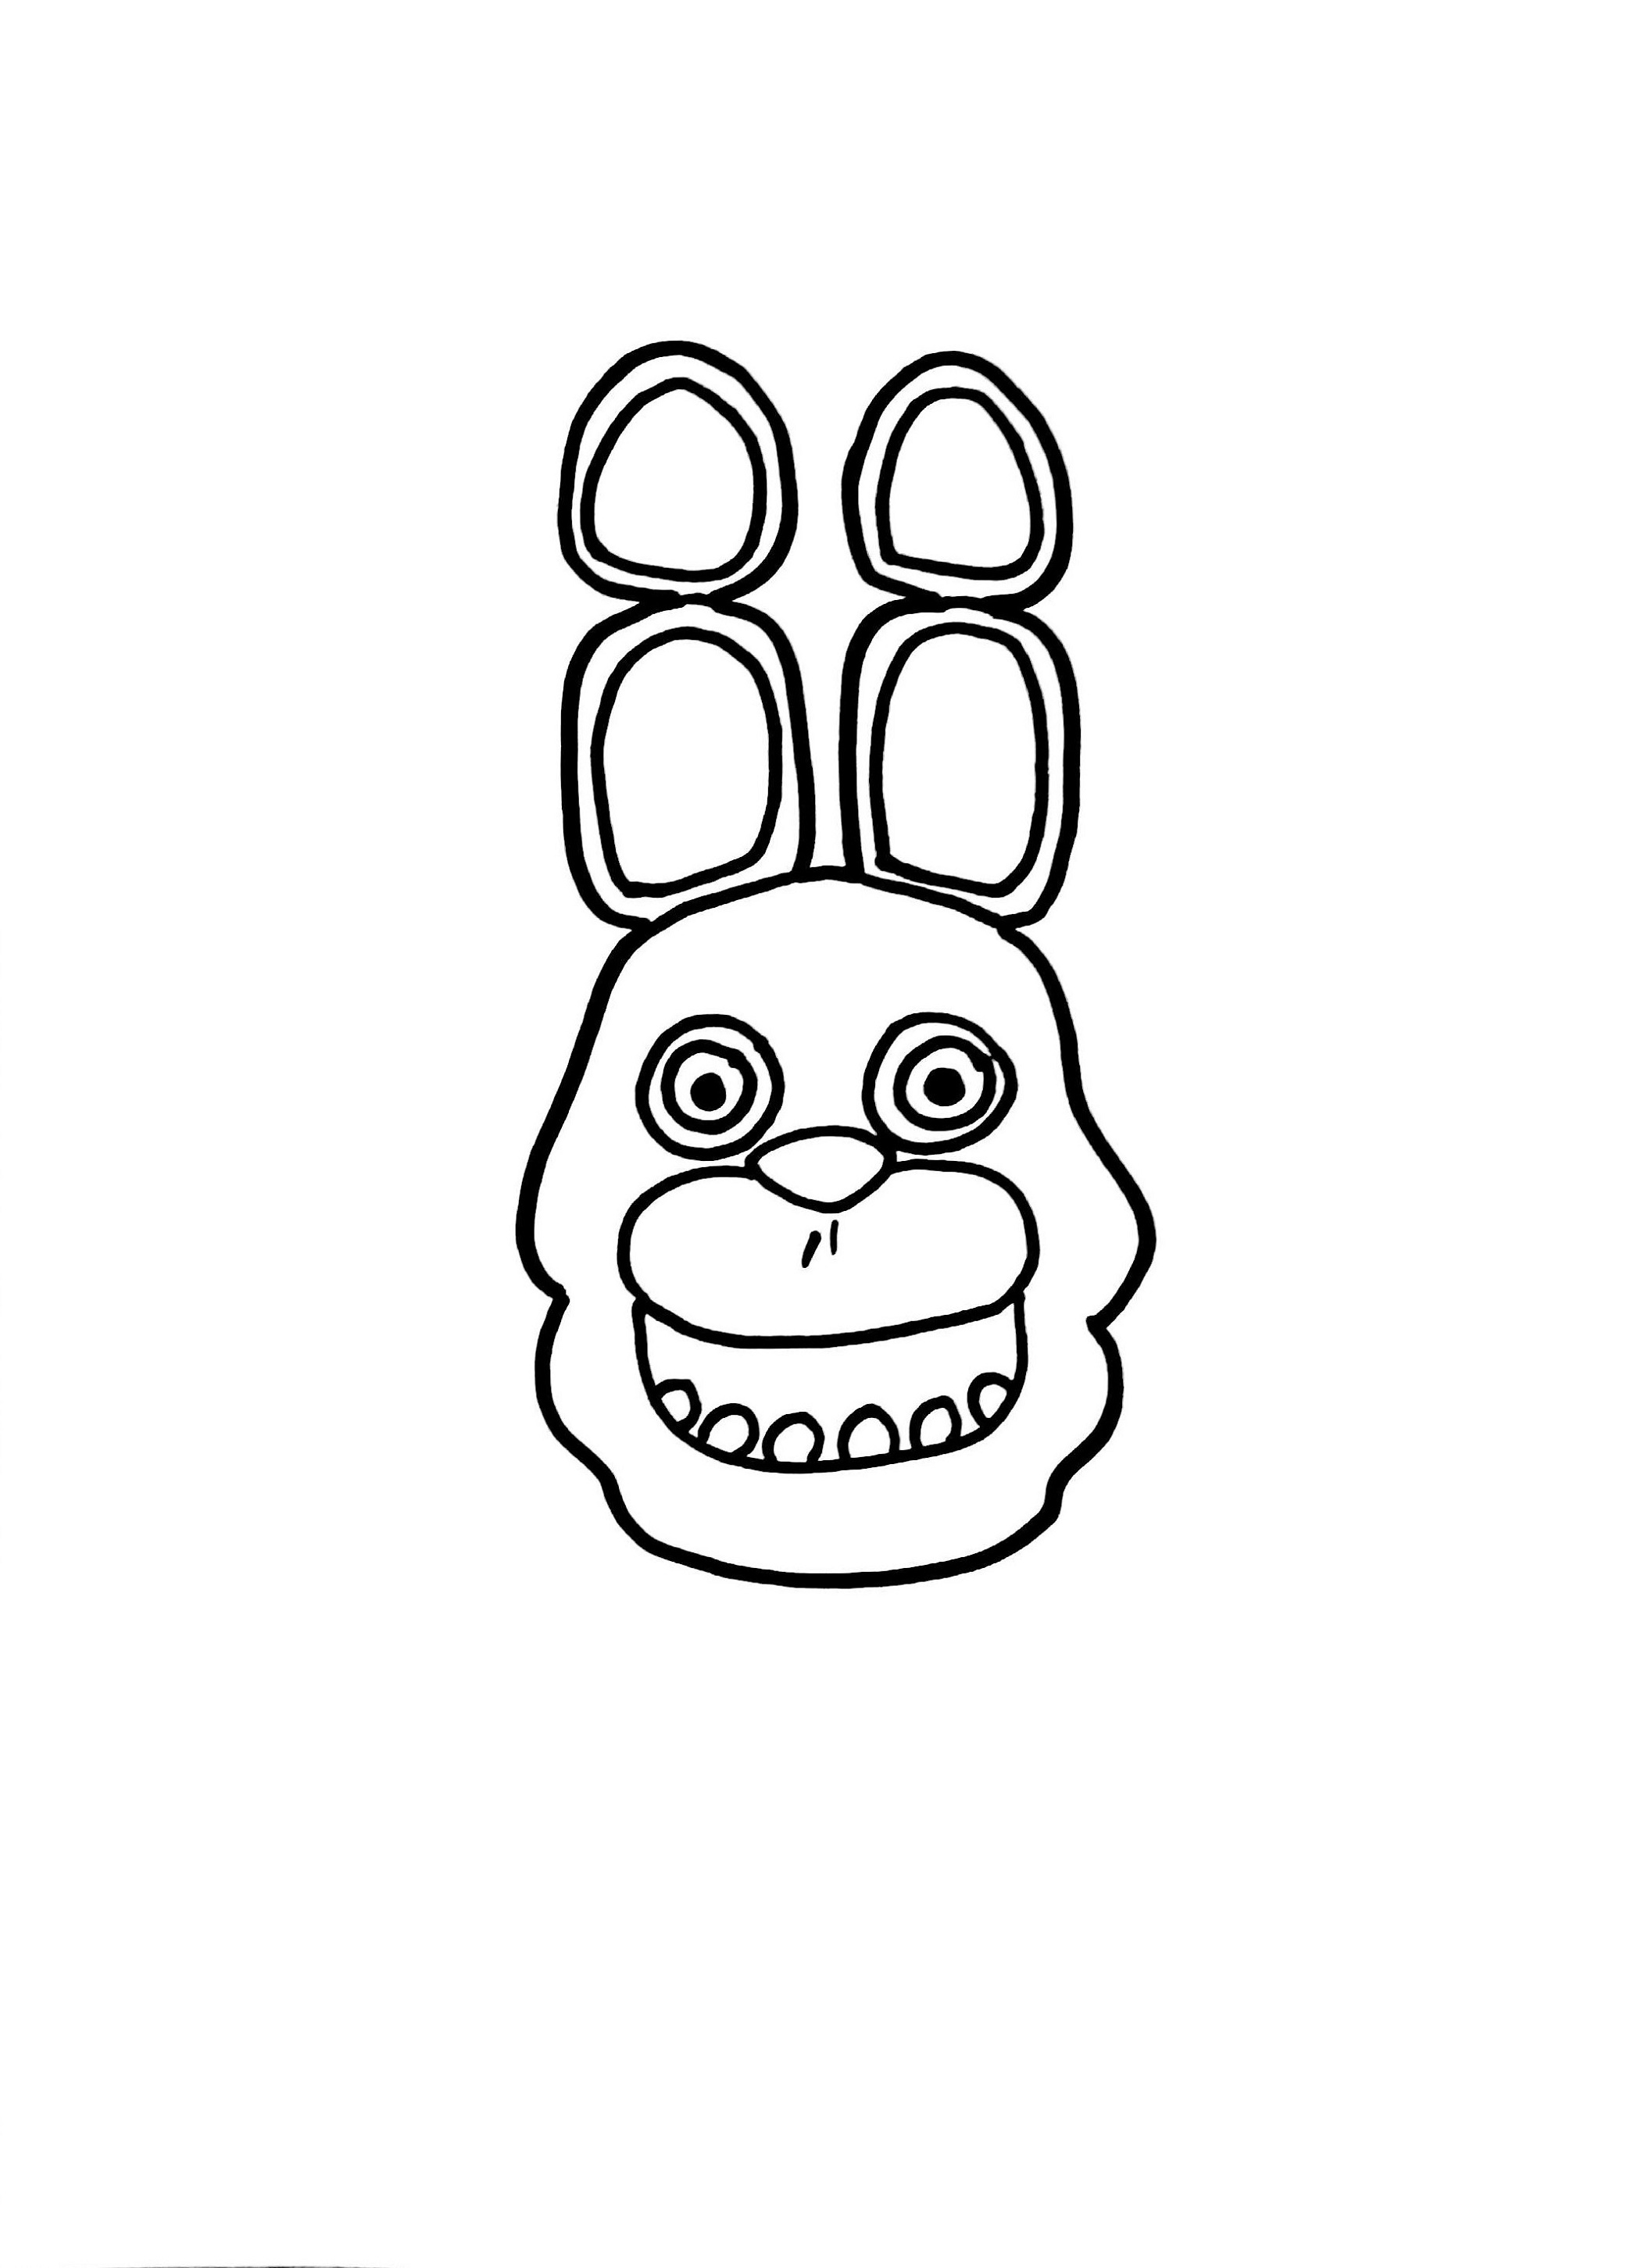 Five Nights At Freddy S Coloring Bonnie The Bunny